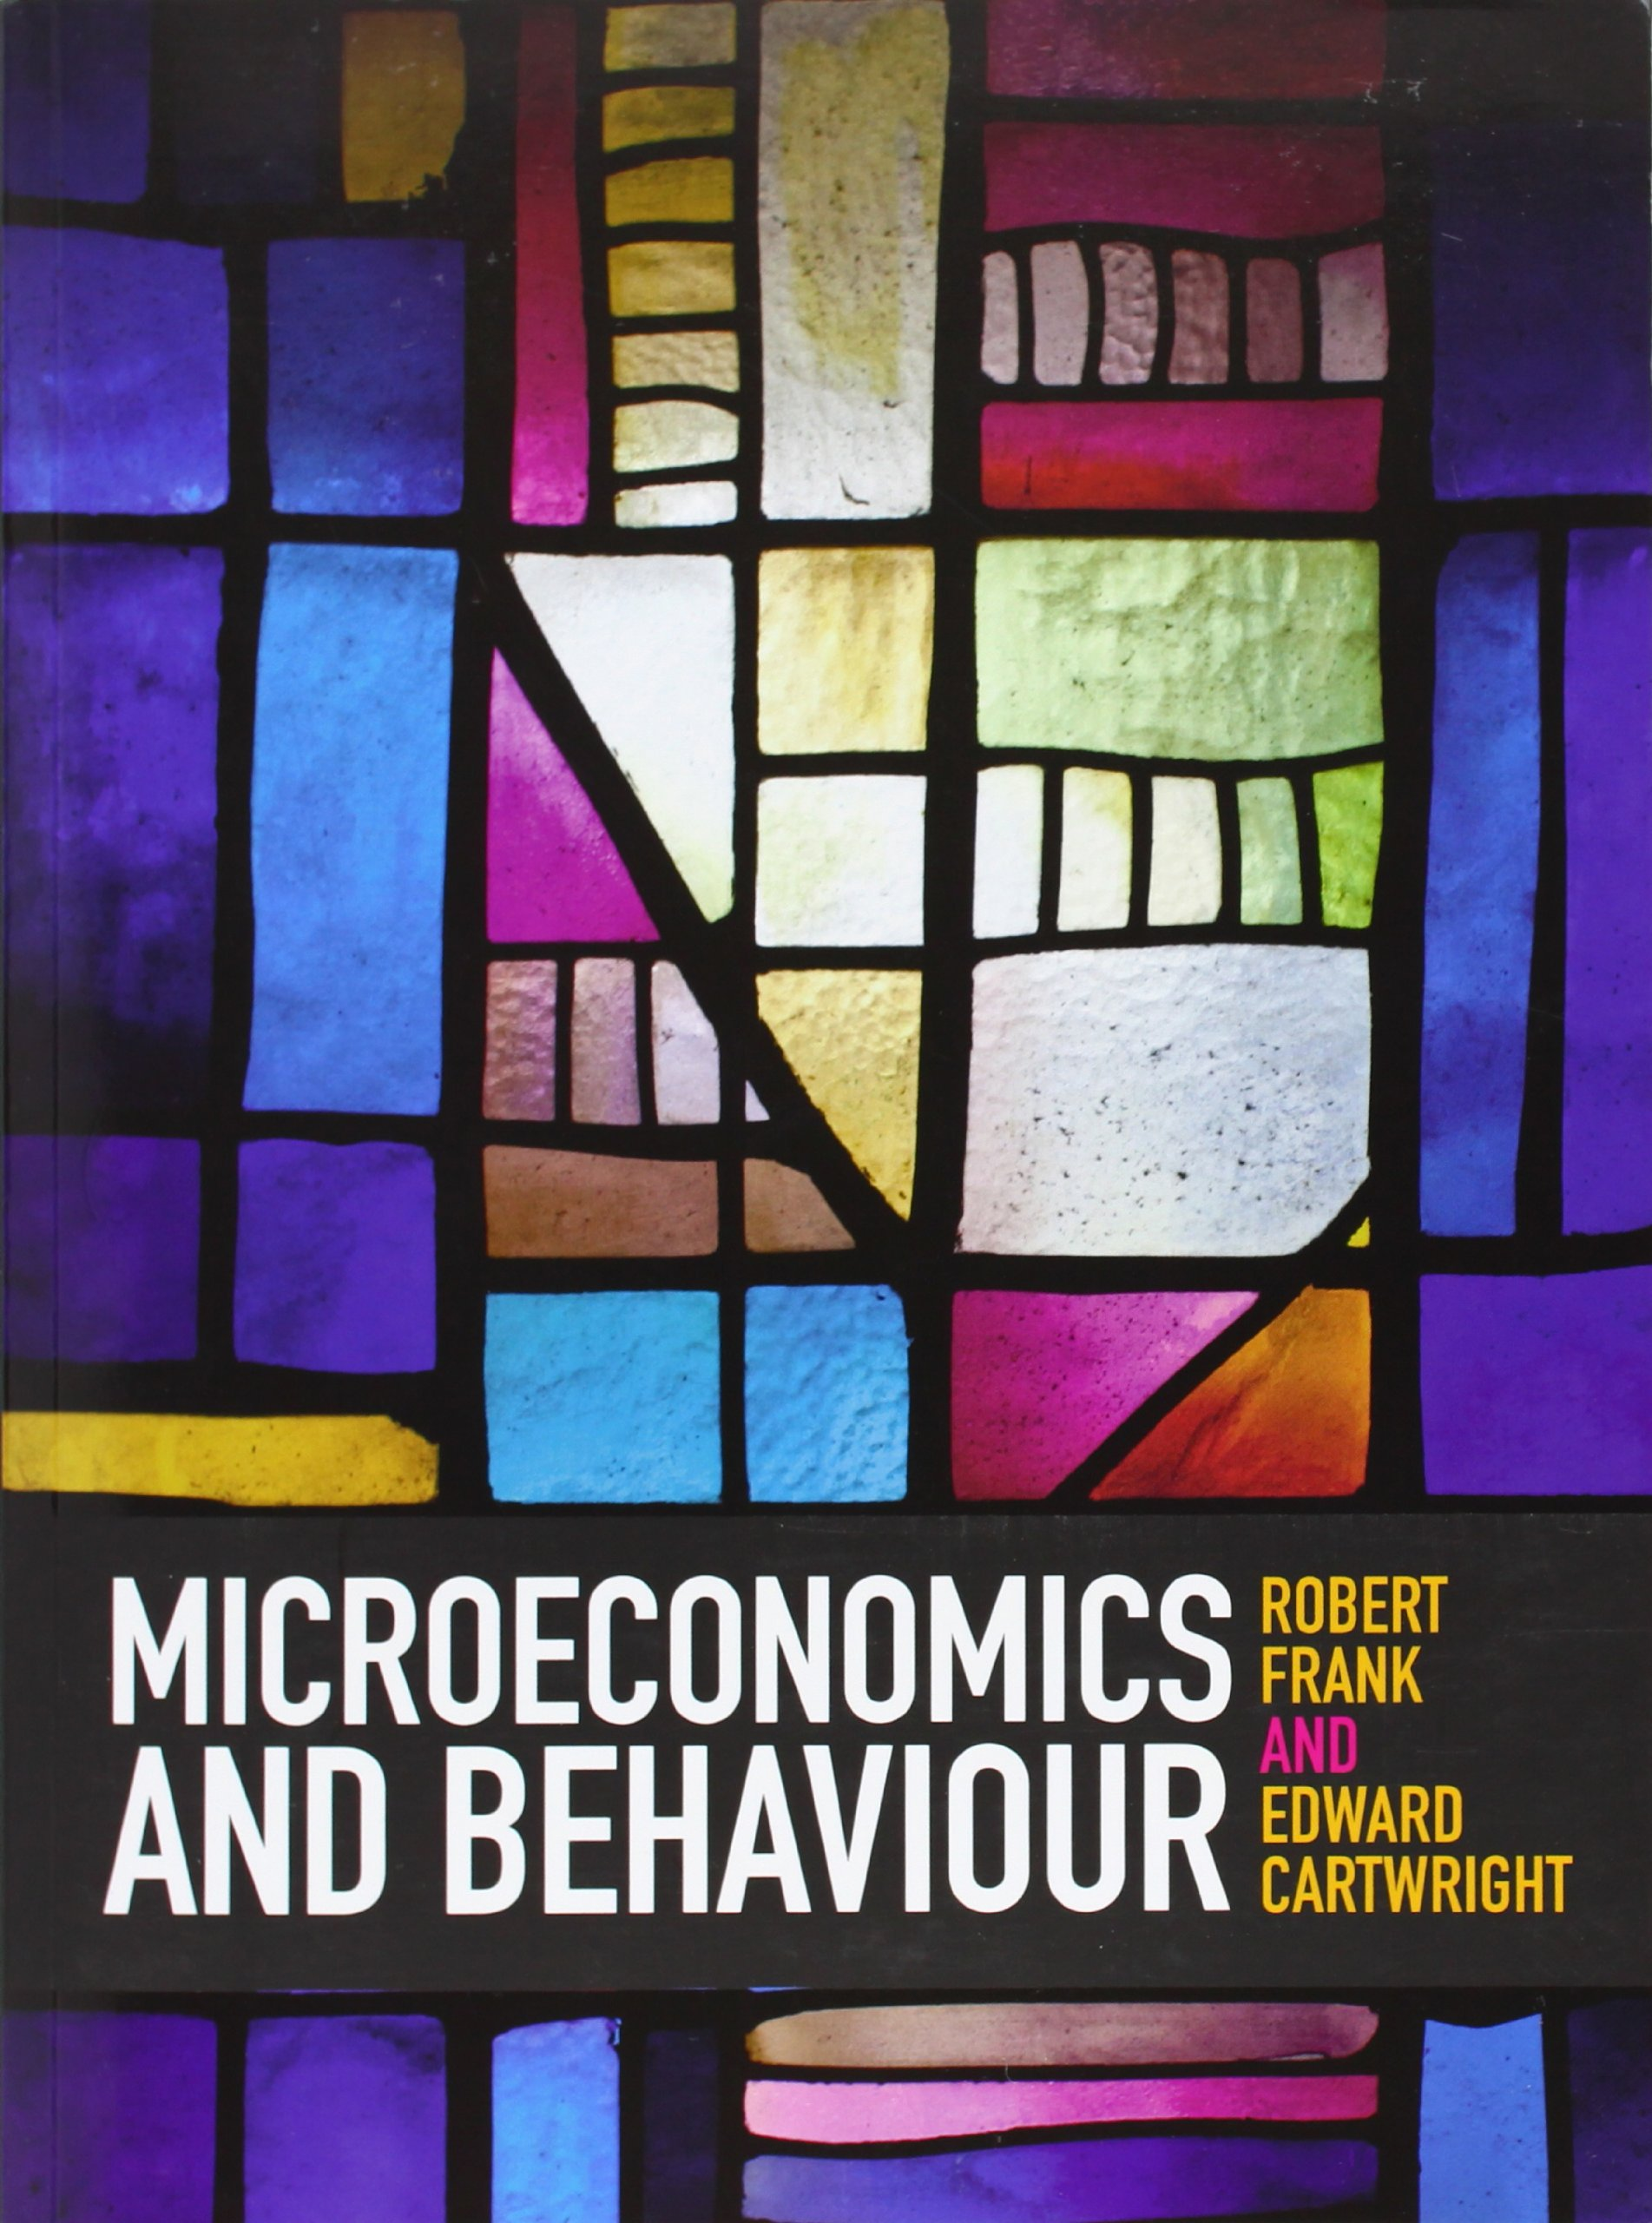 Buy Microeconomics and Behaviour Book Online at Low Prices in India    Microeconomics and Behaviour Reviews & Ratings - Amazon.in